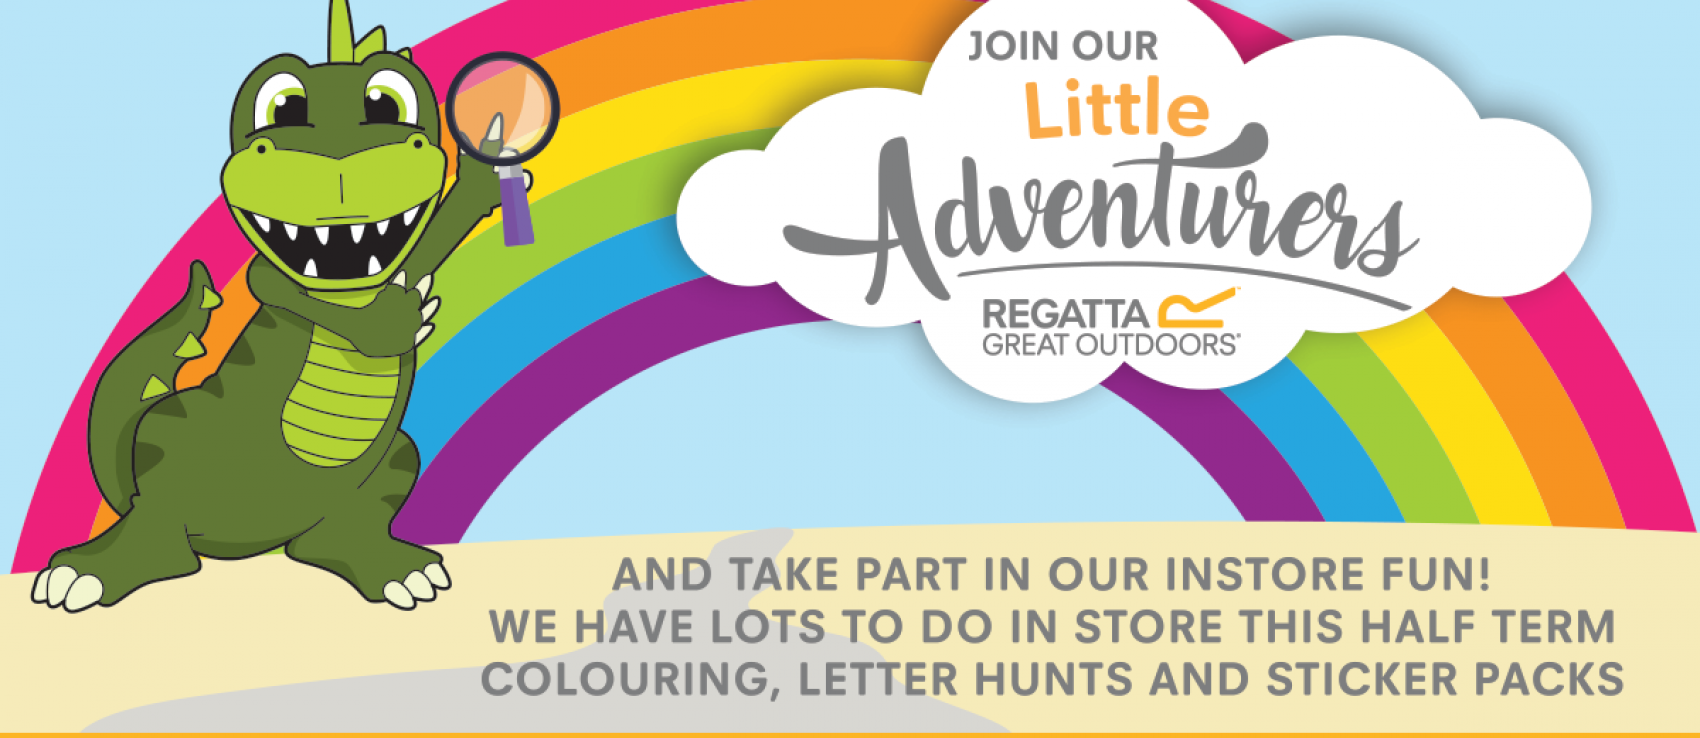 Regatta's Half Term Activities For Your Little Adventurers banner